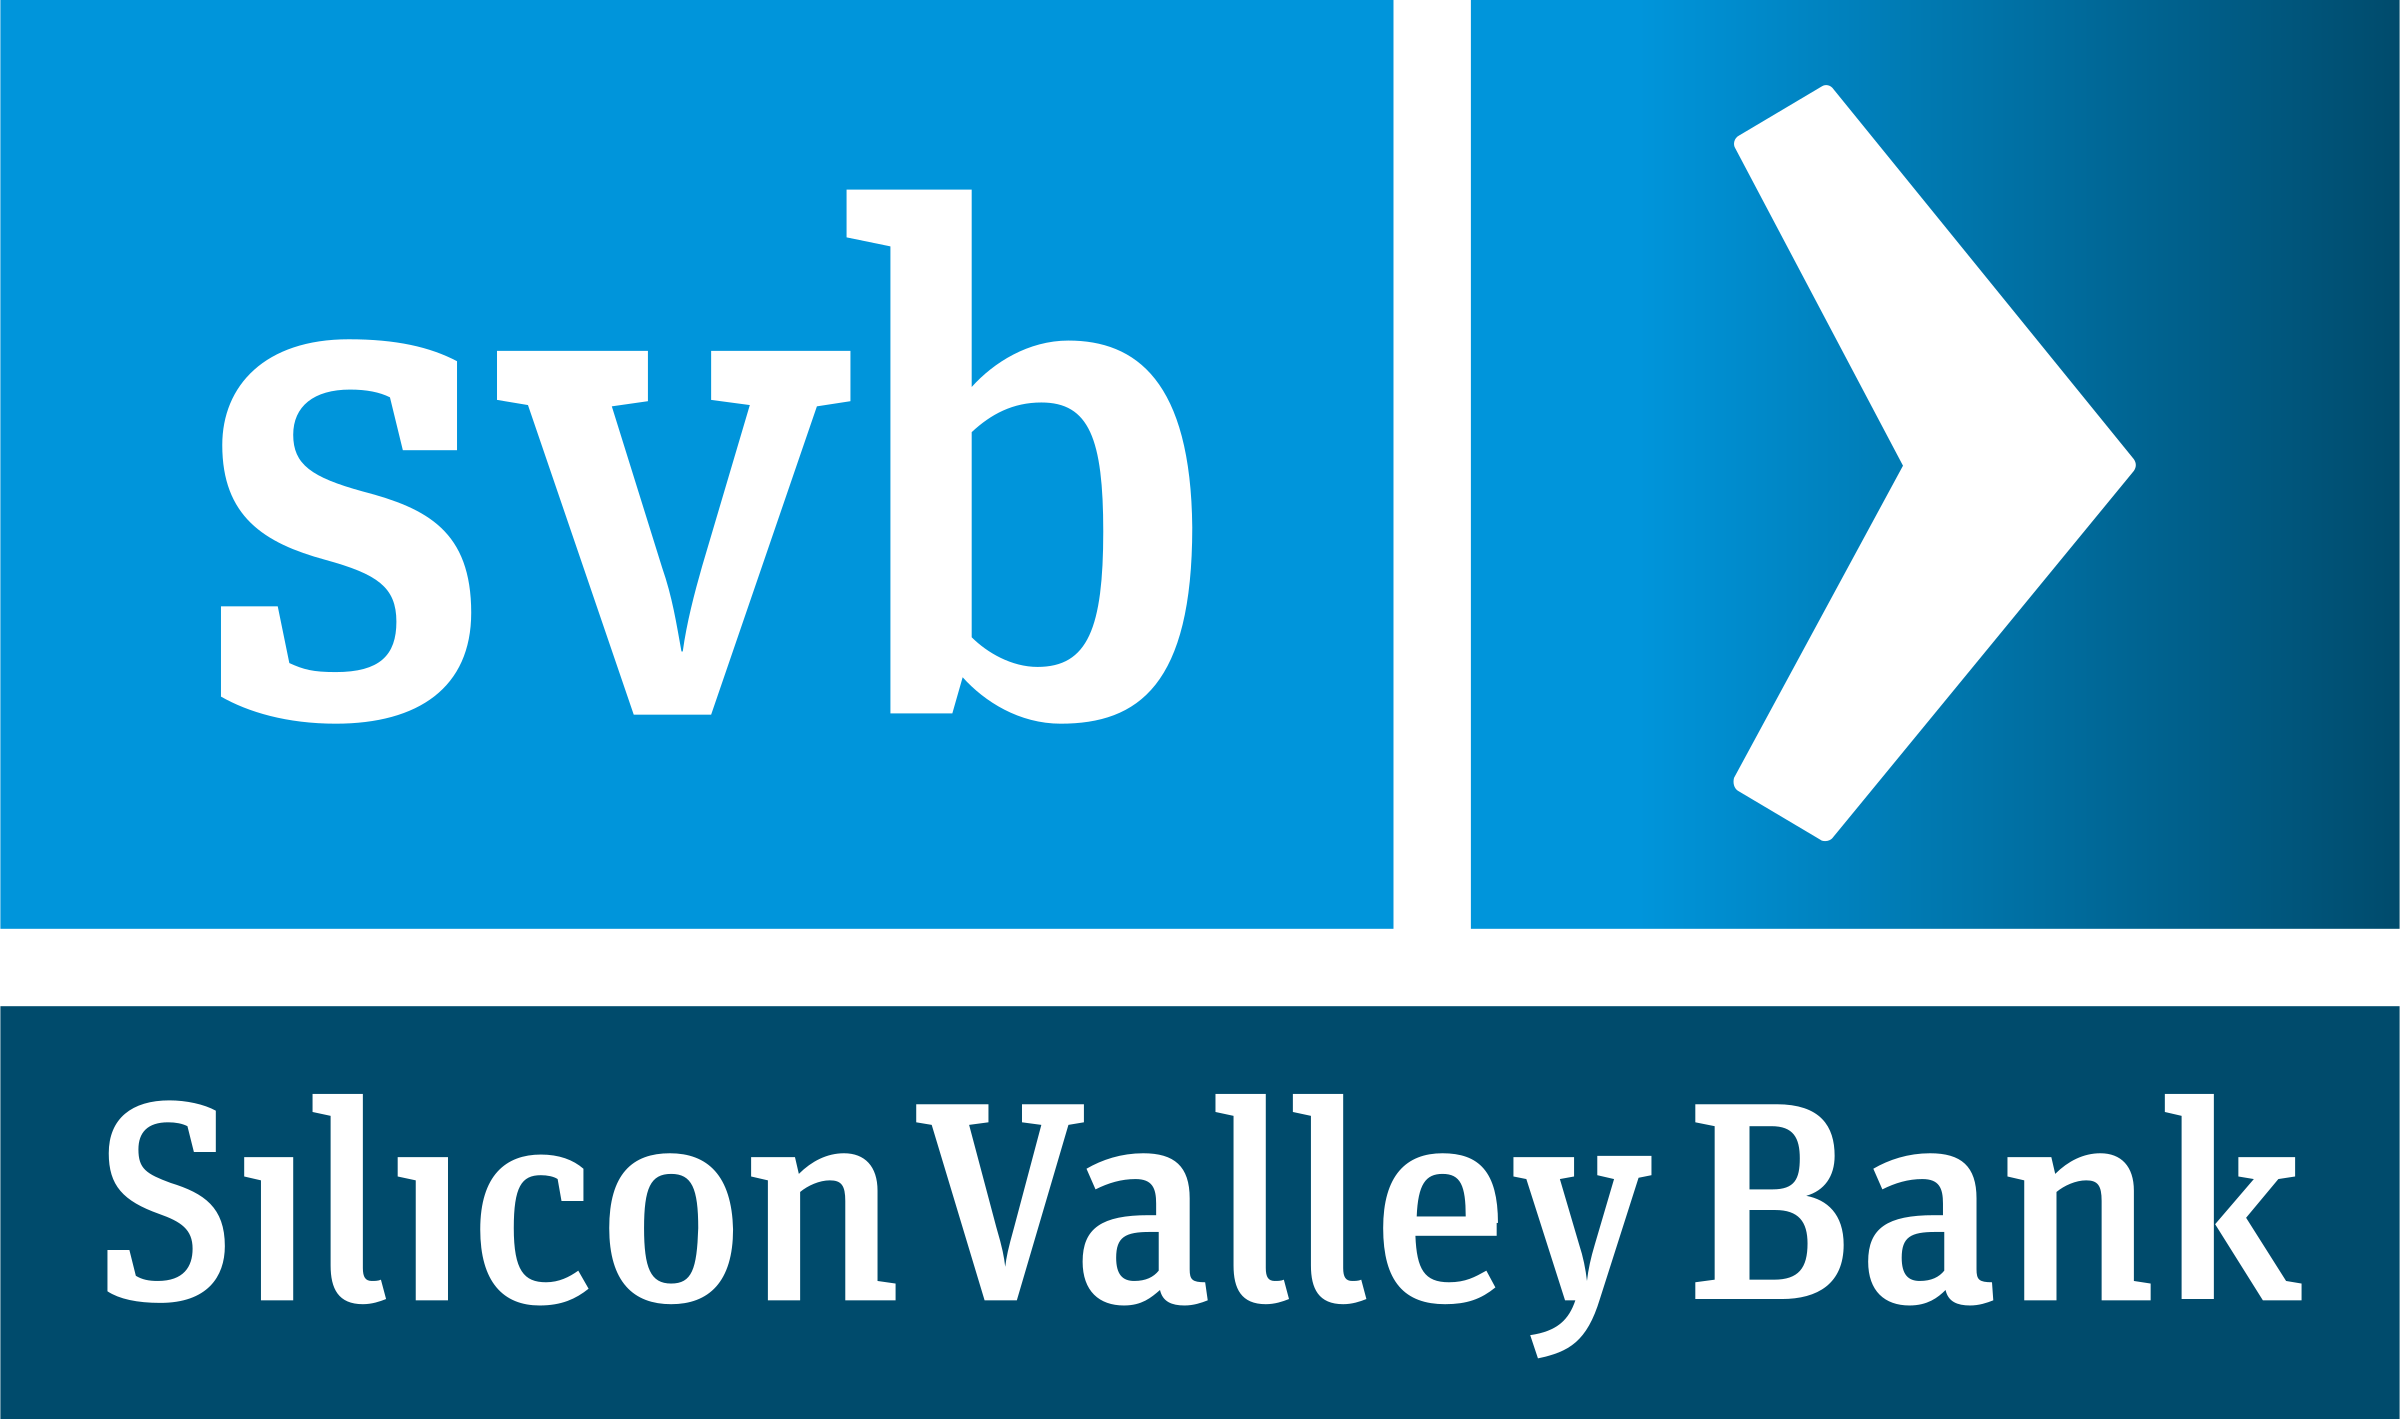 silicon-valley-bank-1-logo-png-transparent.png